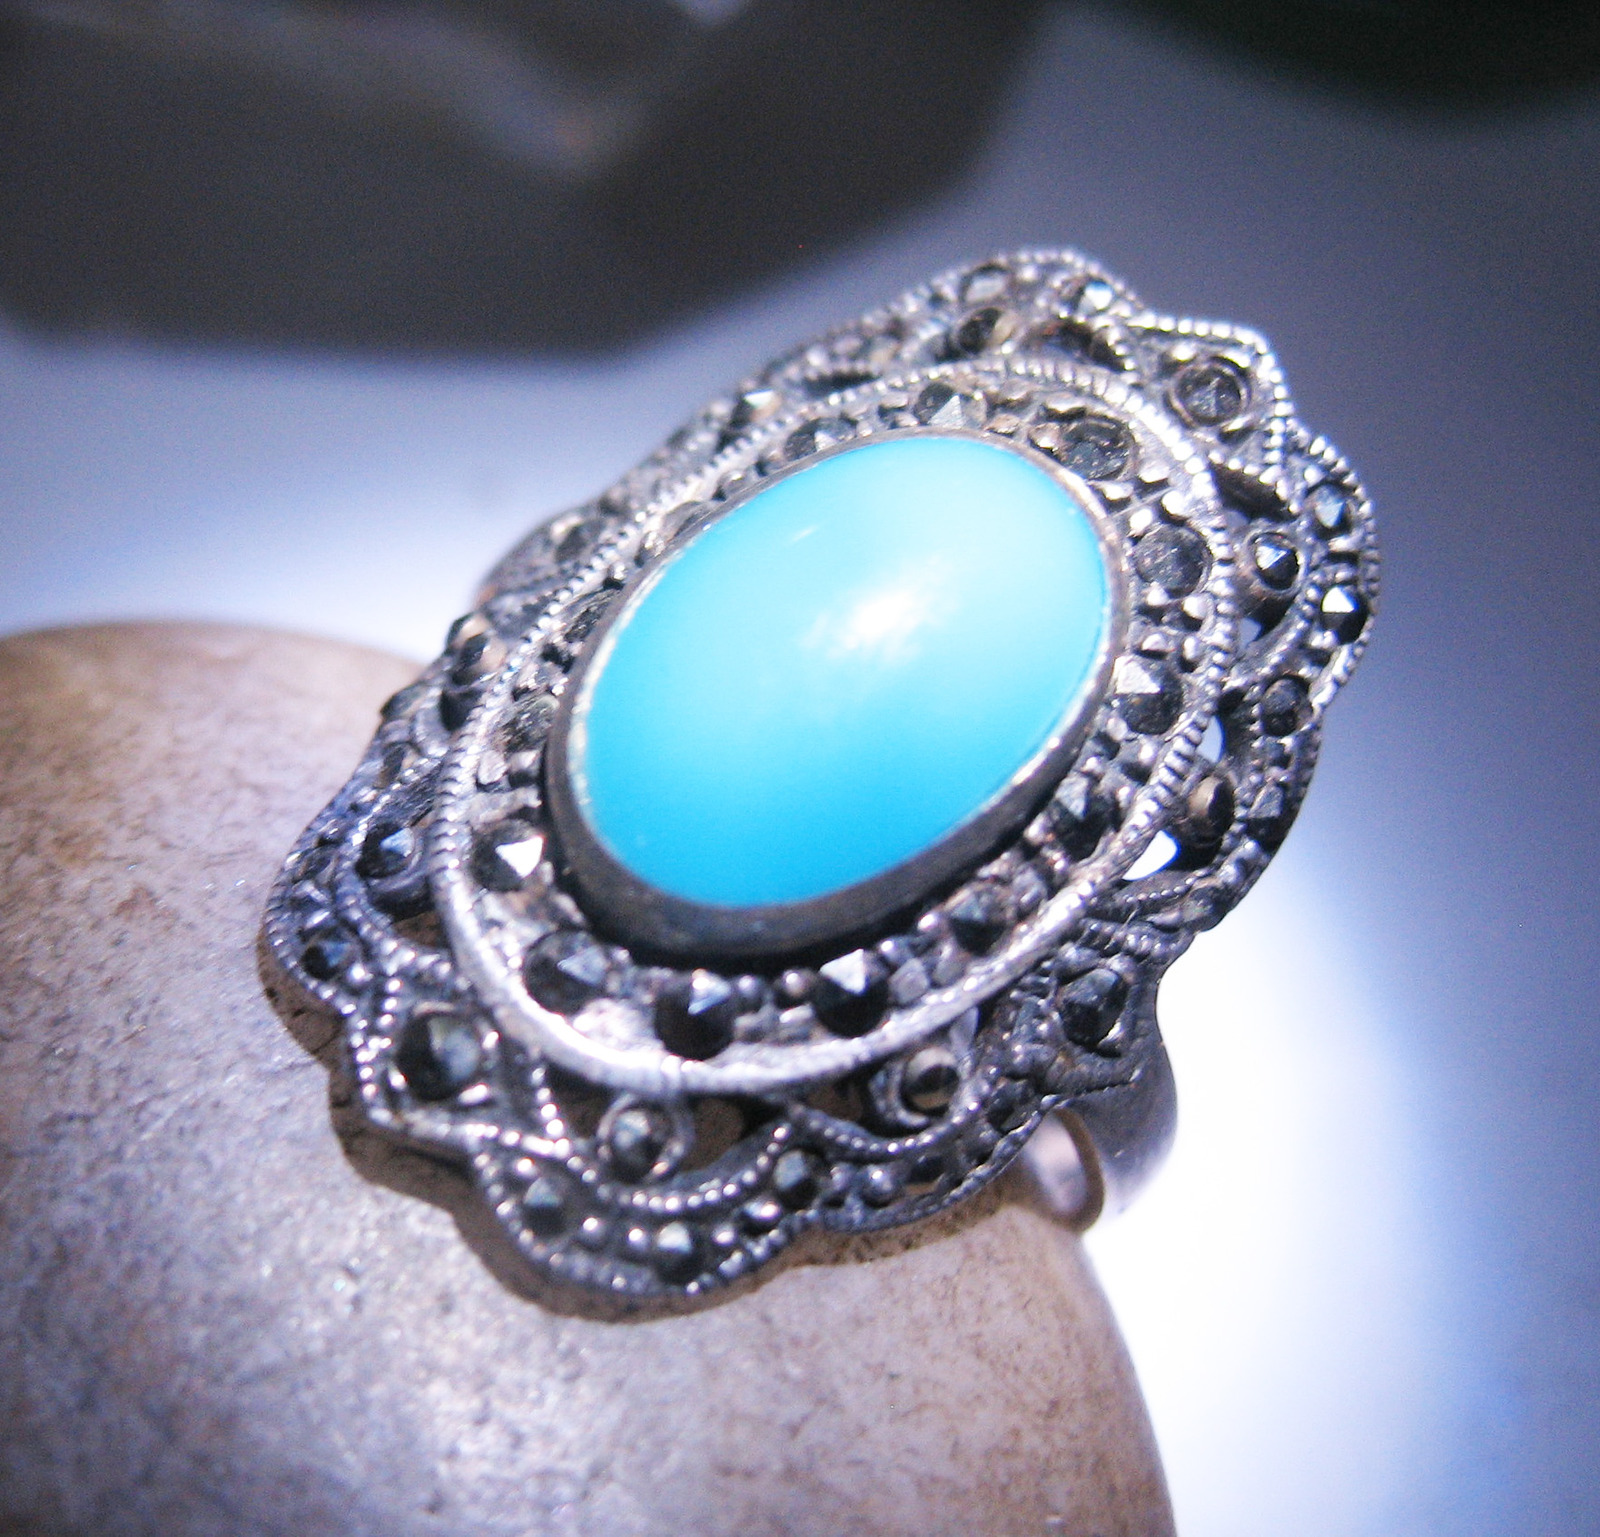 Haunted RING BANISH HEAL EMPOWER DJIN GUIDES MAGICK Spell 925 TURQUOISE Cassia4